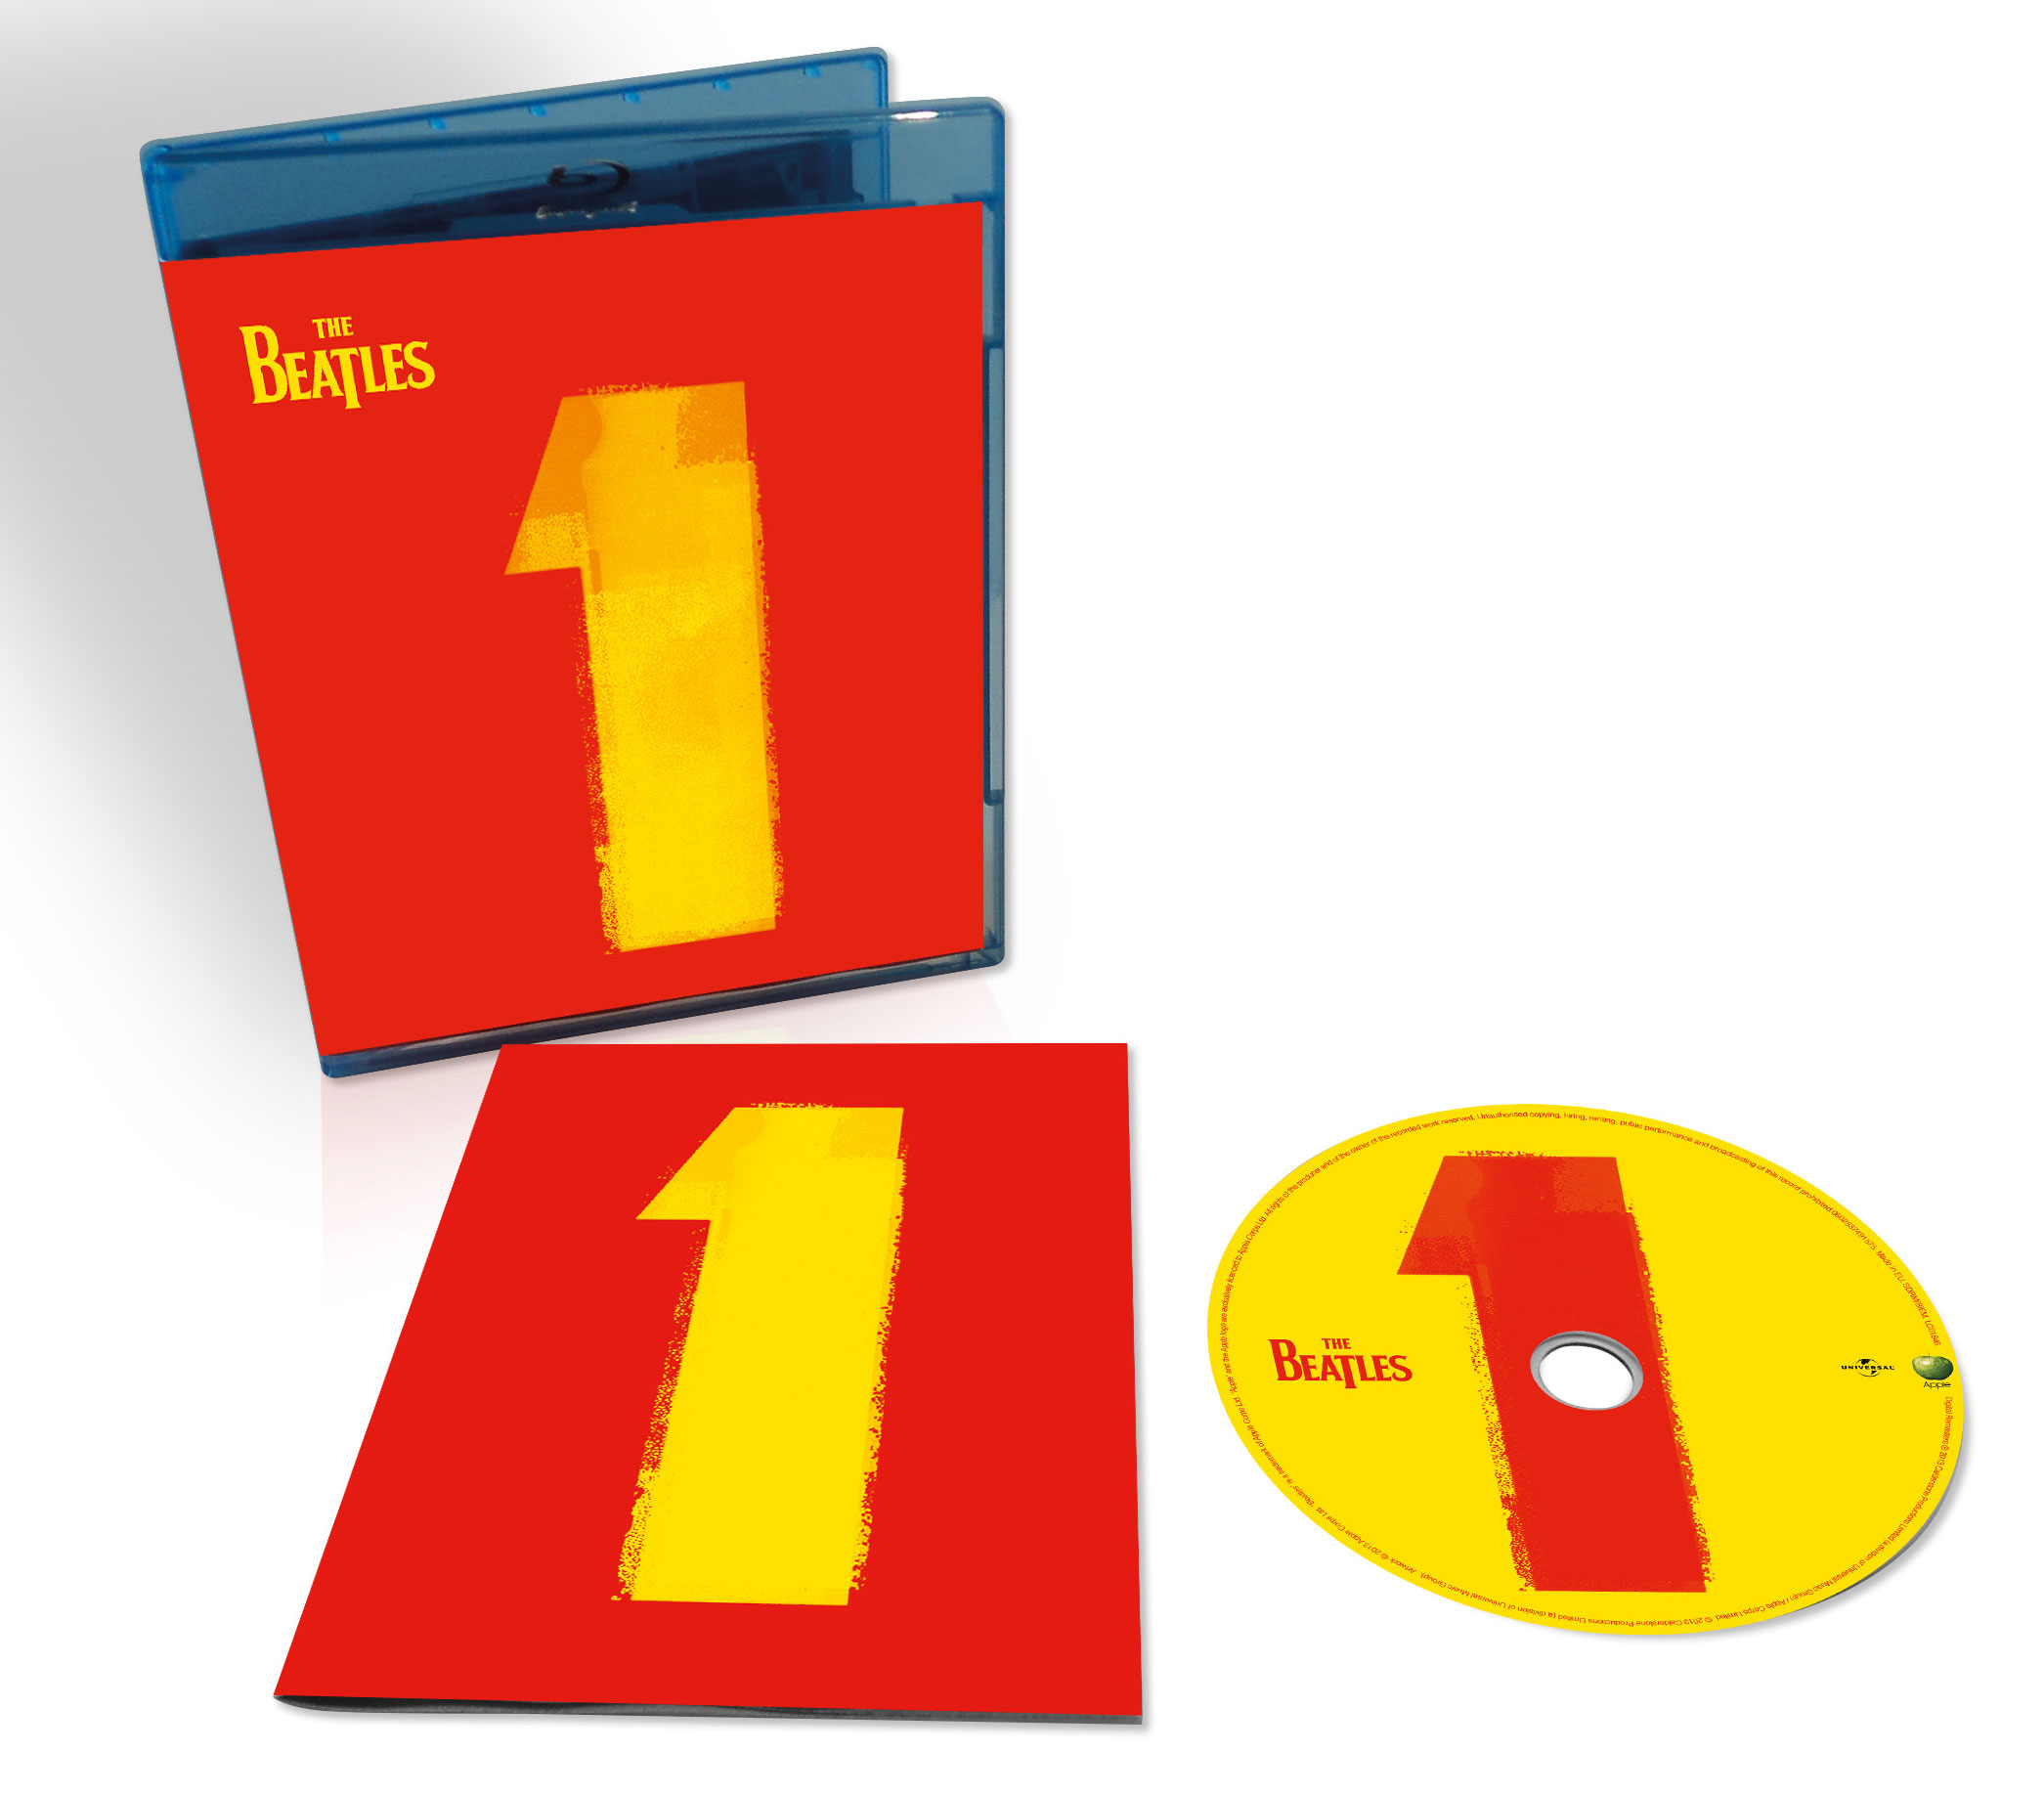 The Beatles / 1 blu-ray with restored videos and remixed audio